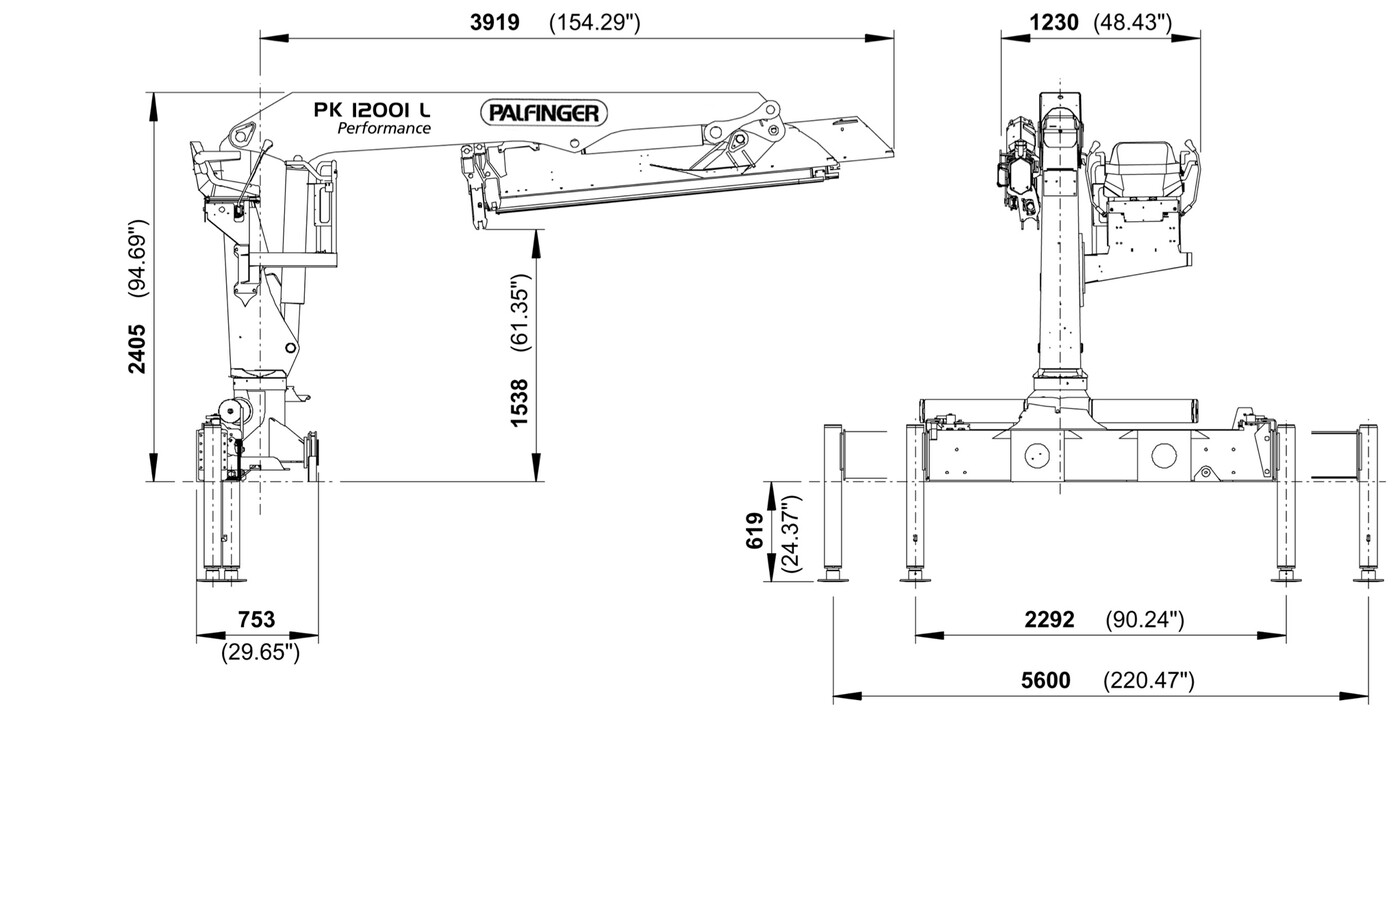 pk12001l_drawing pk 12001 l performance palfinger palfinger wiring diagram at readyjetset.co